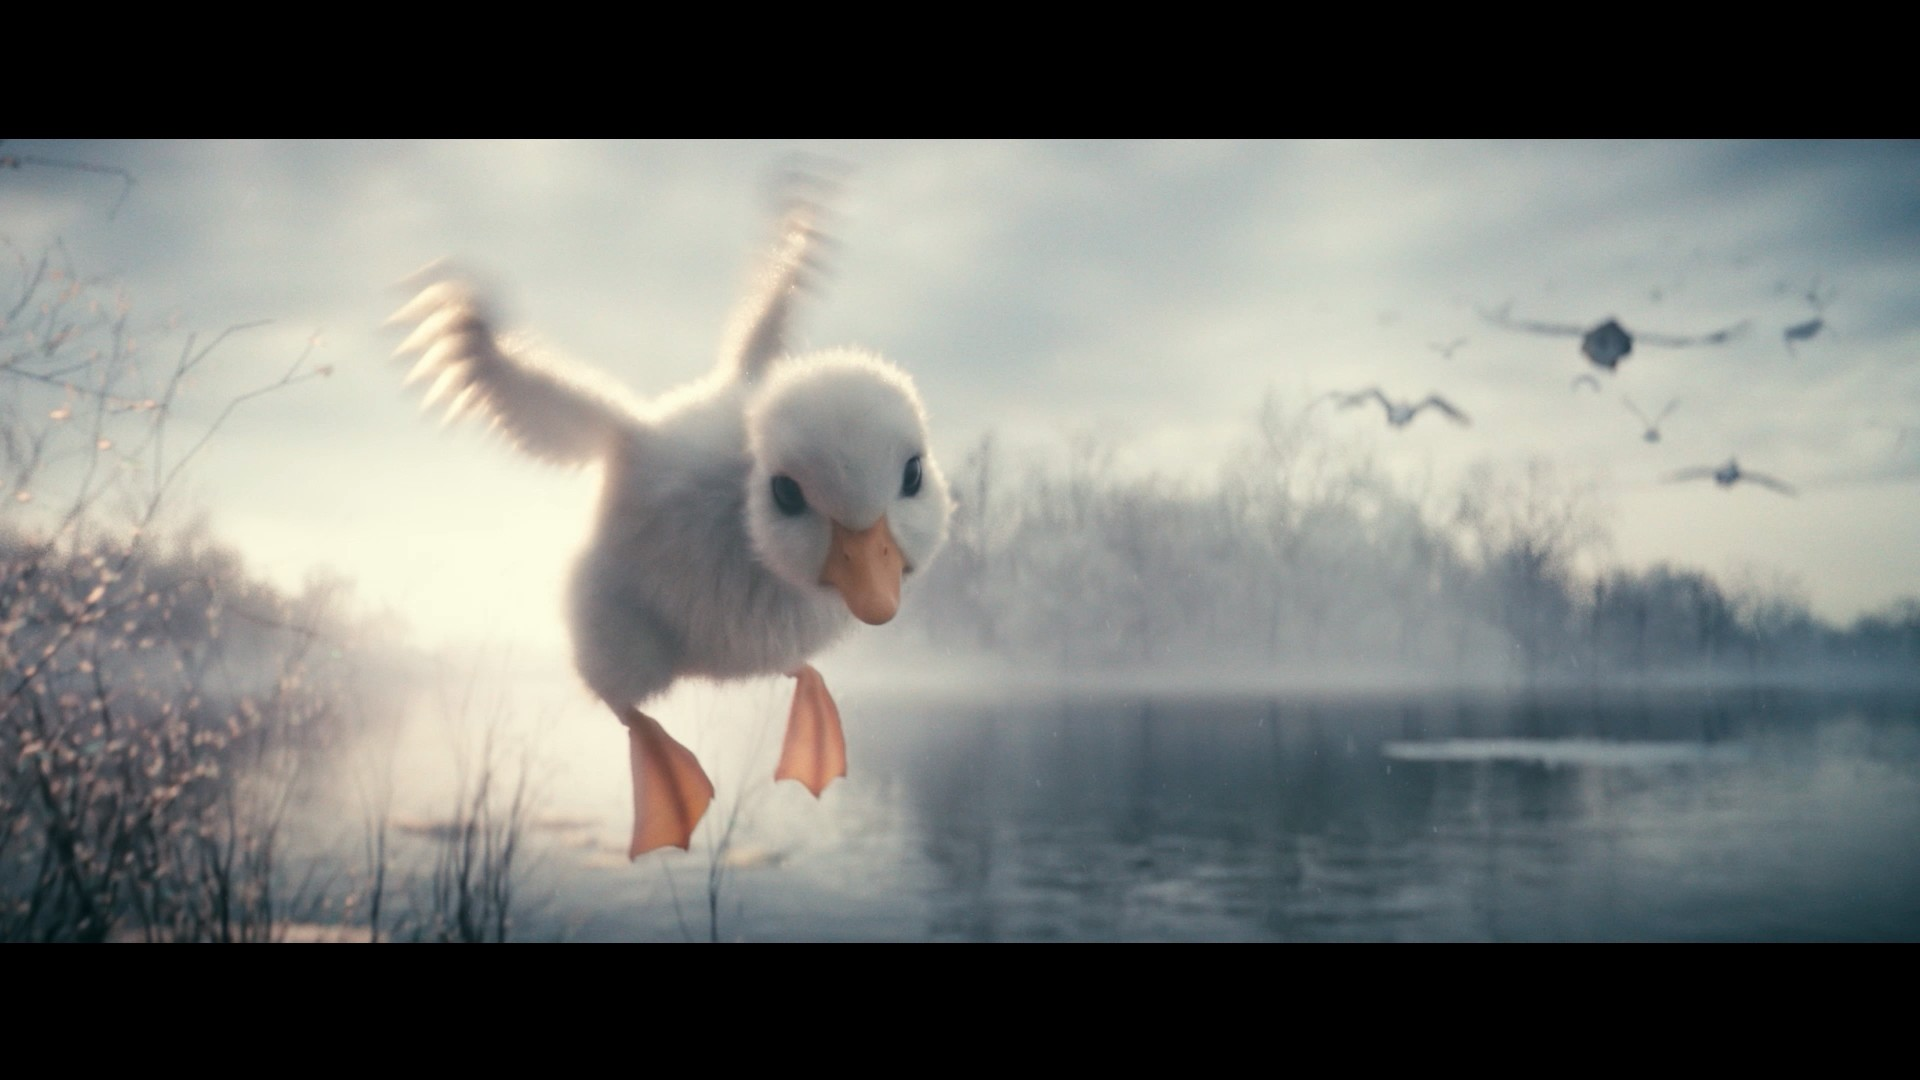 Quentin chaillet disneyduck 60s hd uk mp4 snapshot 00 31 2018 12 31 18 55 17